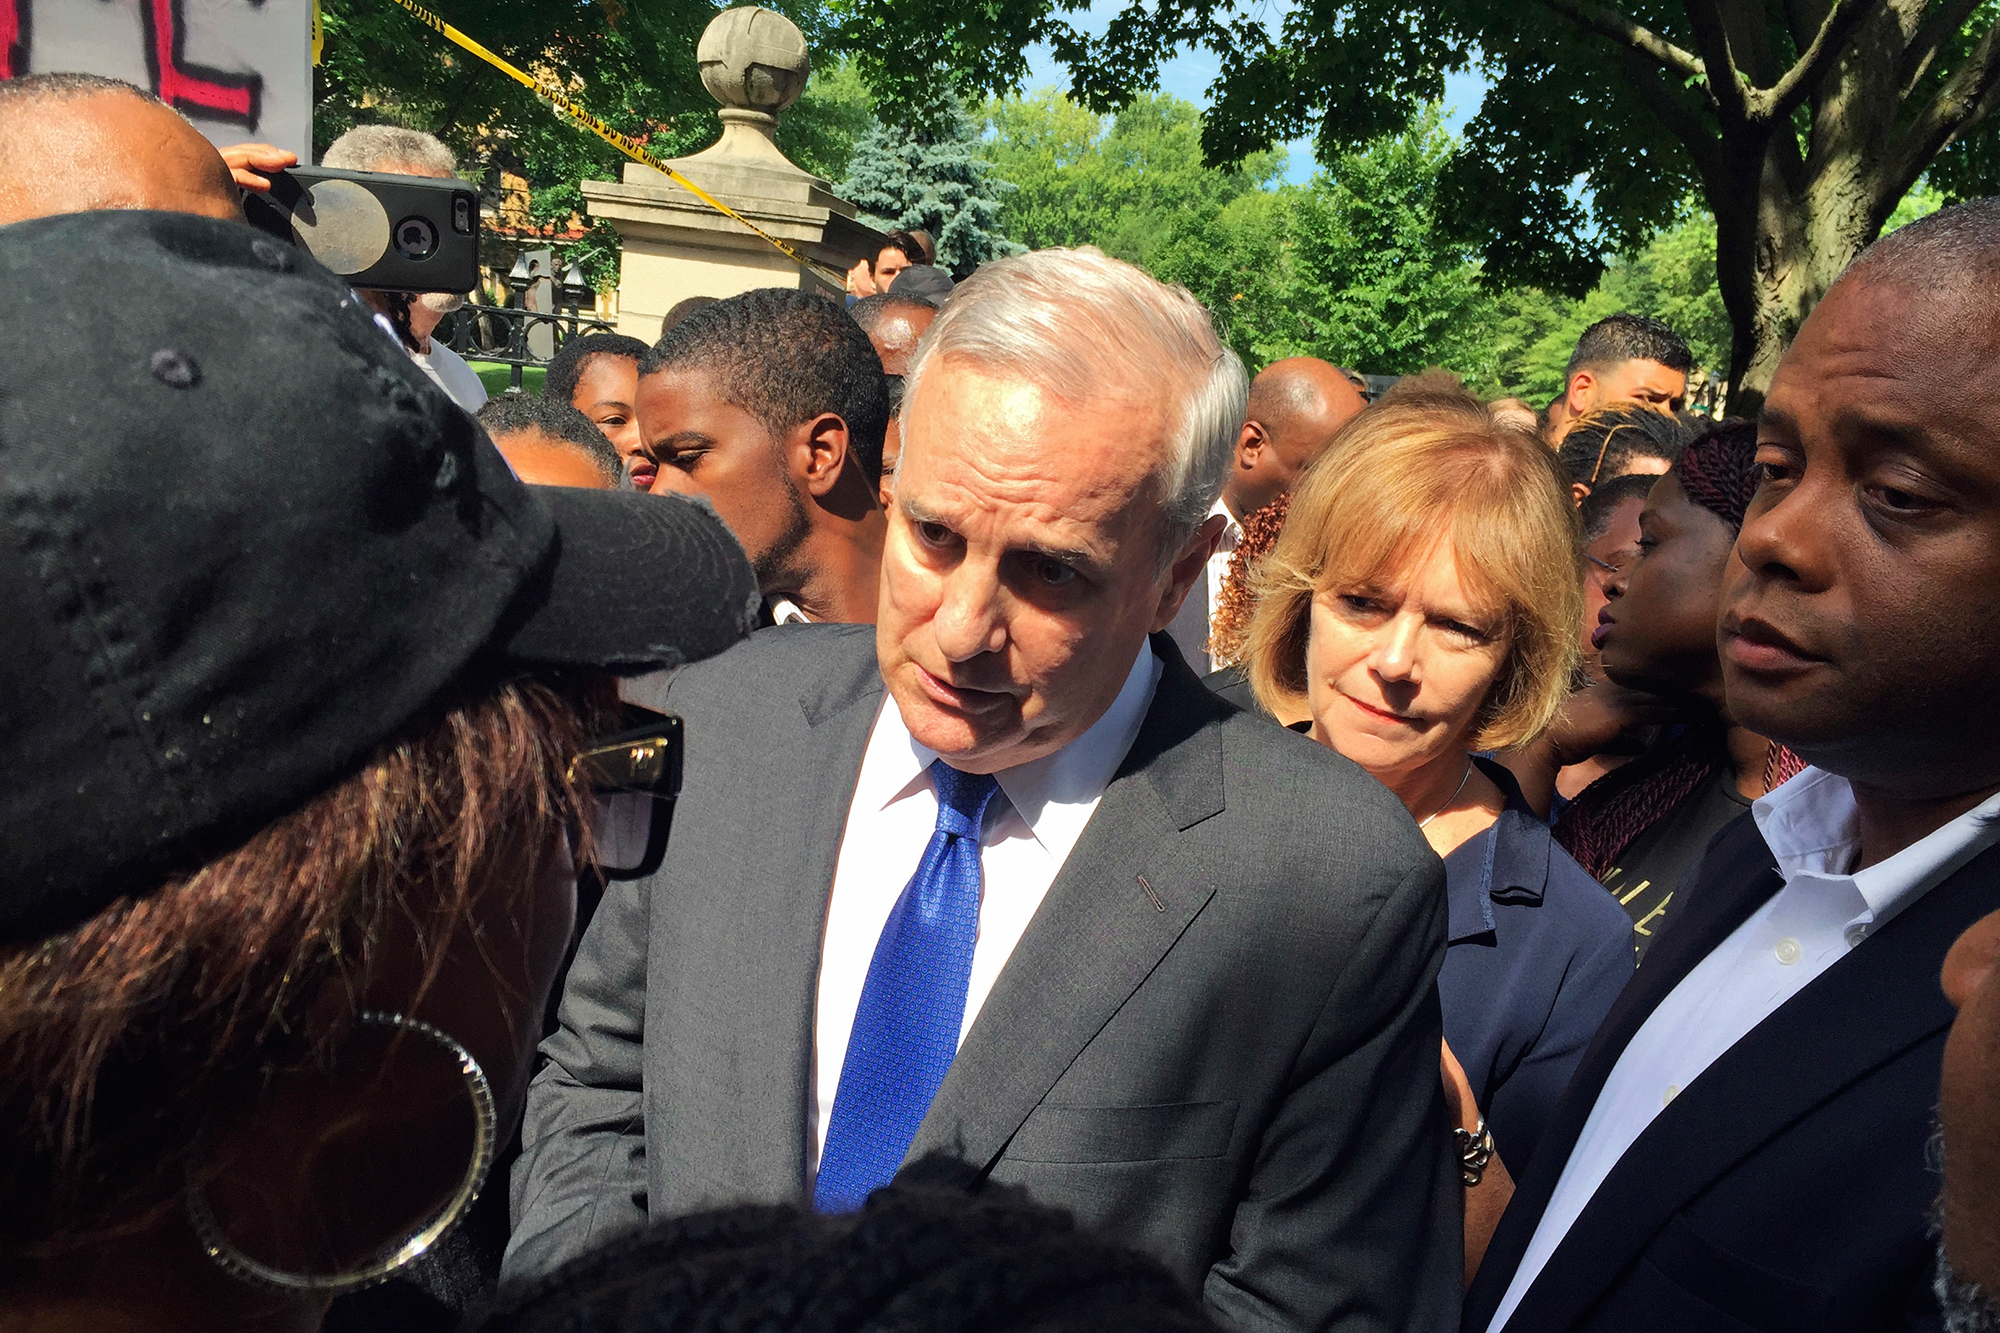 Minn. Gov. Mark Dayton expresses his condolences to Diamond Reynolds for the death of her boyfriend, Philando Castile, outside the governor's residence in St. Paul, Minn. on July 7, 2016.